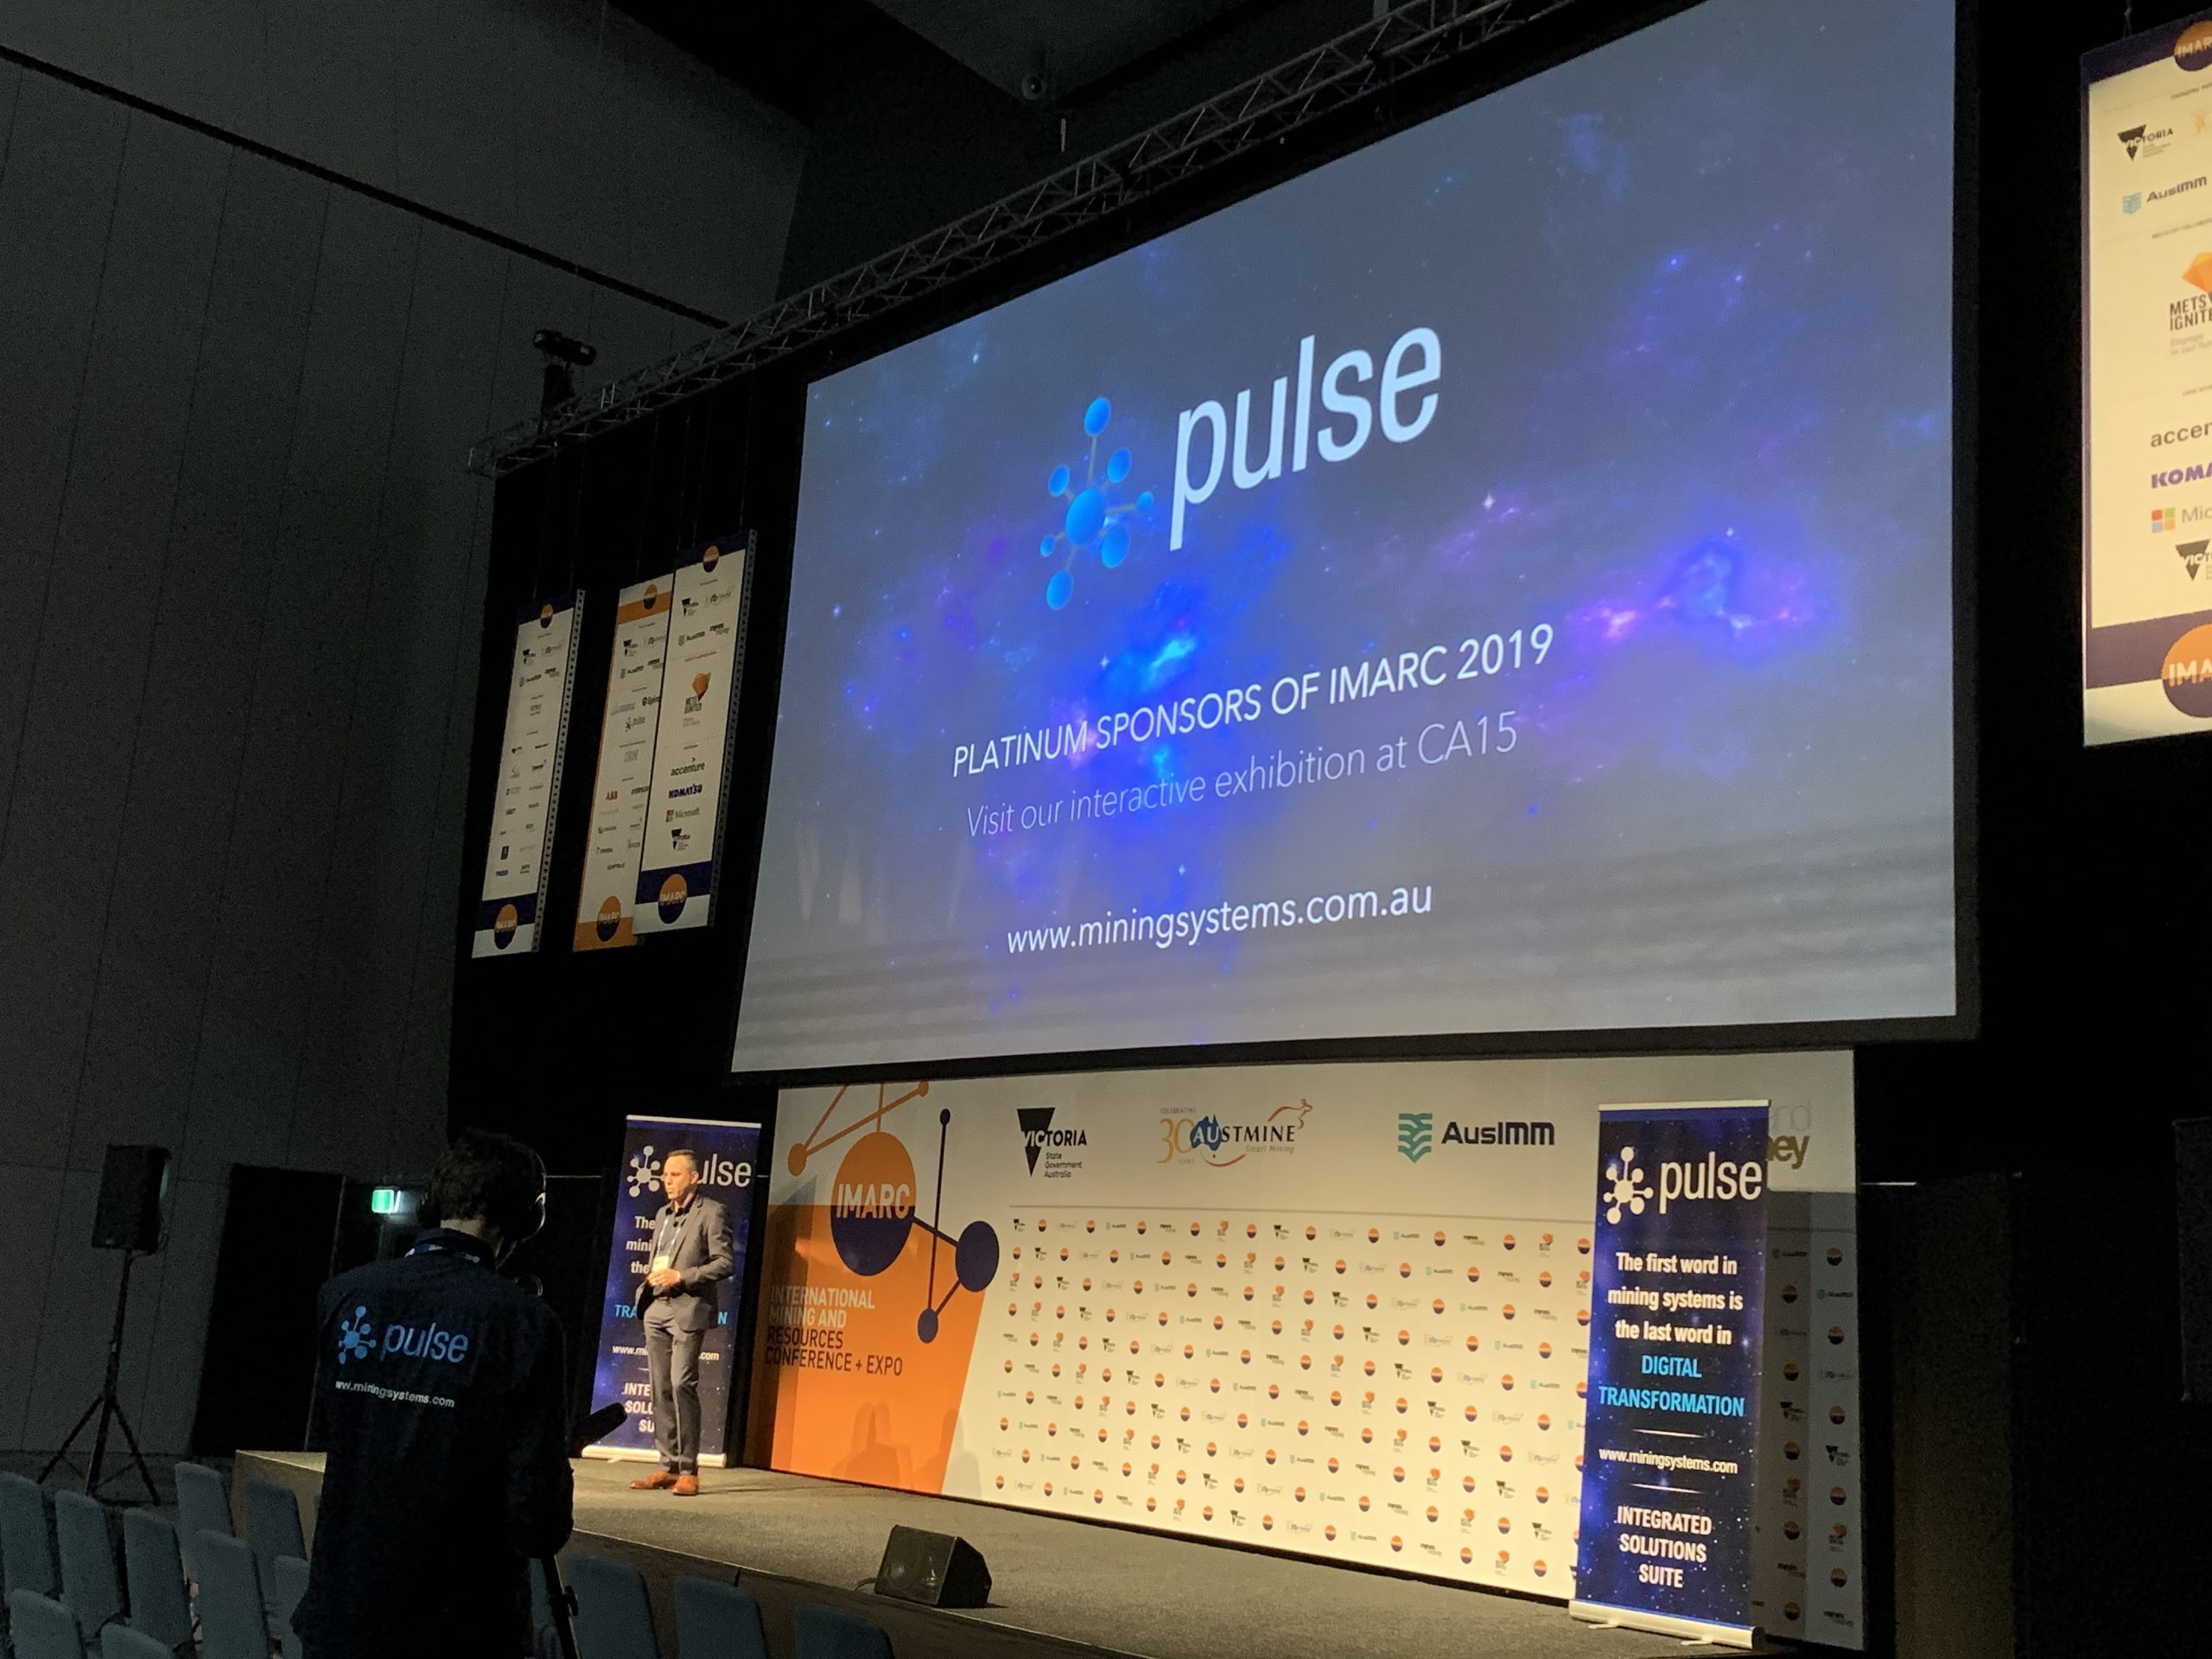 Pulse takes centre stage at IMARC 2019